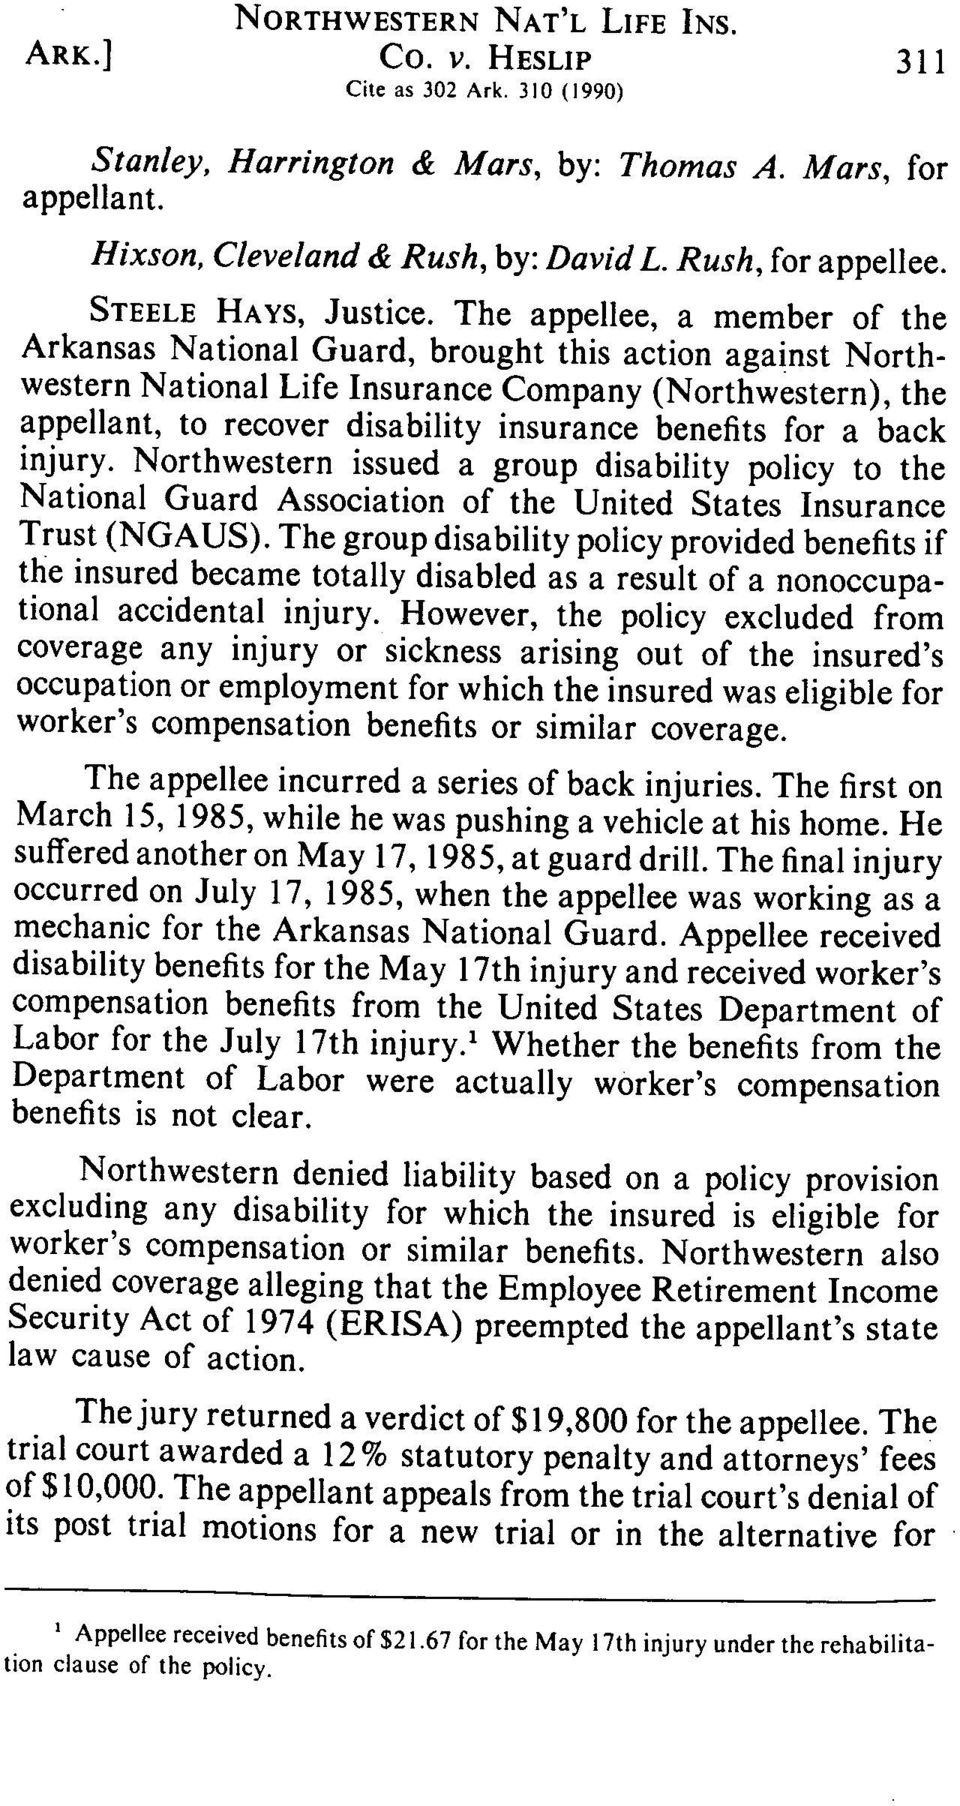 for a back injury. Northwestern issued a group disability policy to the National Guard Association of the United States Insurance Trust (NGAUS).